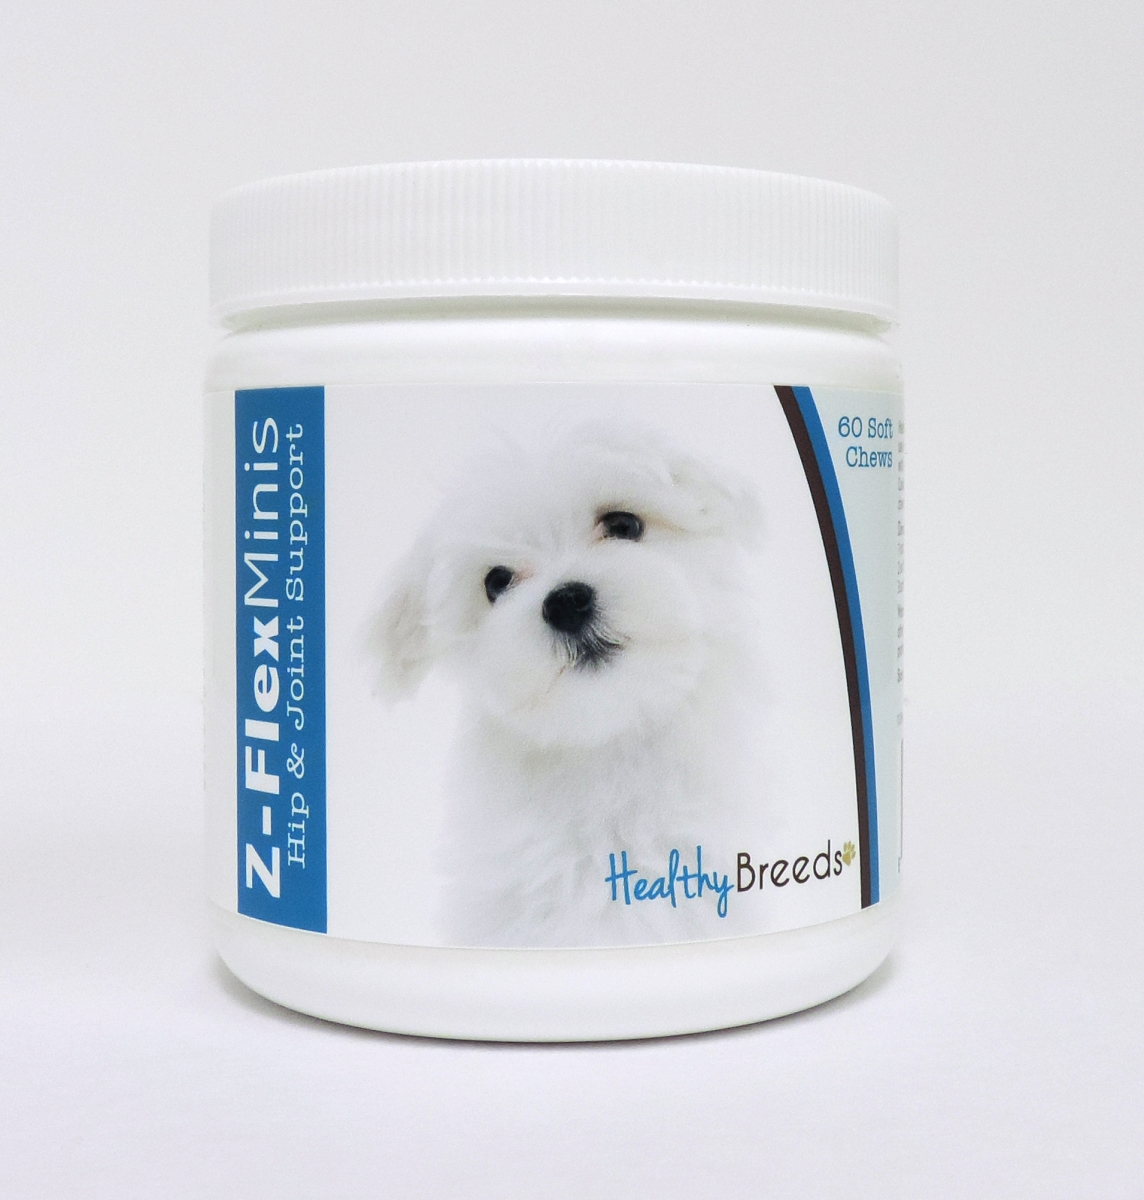 Healthy Breeds 840235110682 Maltese Z-Flex Minis Hip & Joint Support Soft Chews - 60 Count